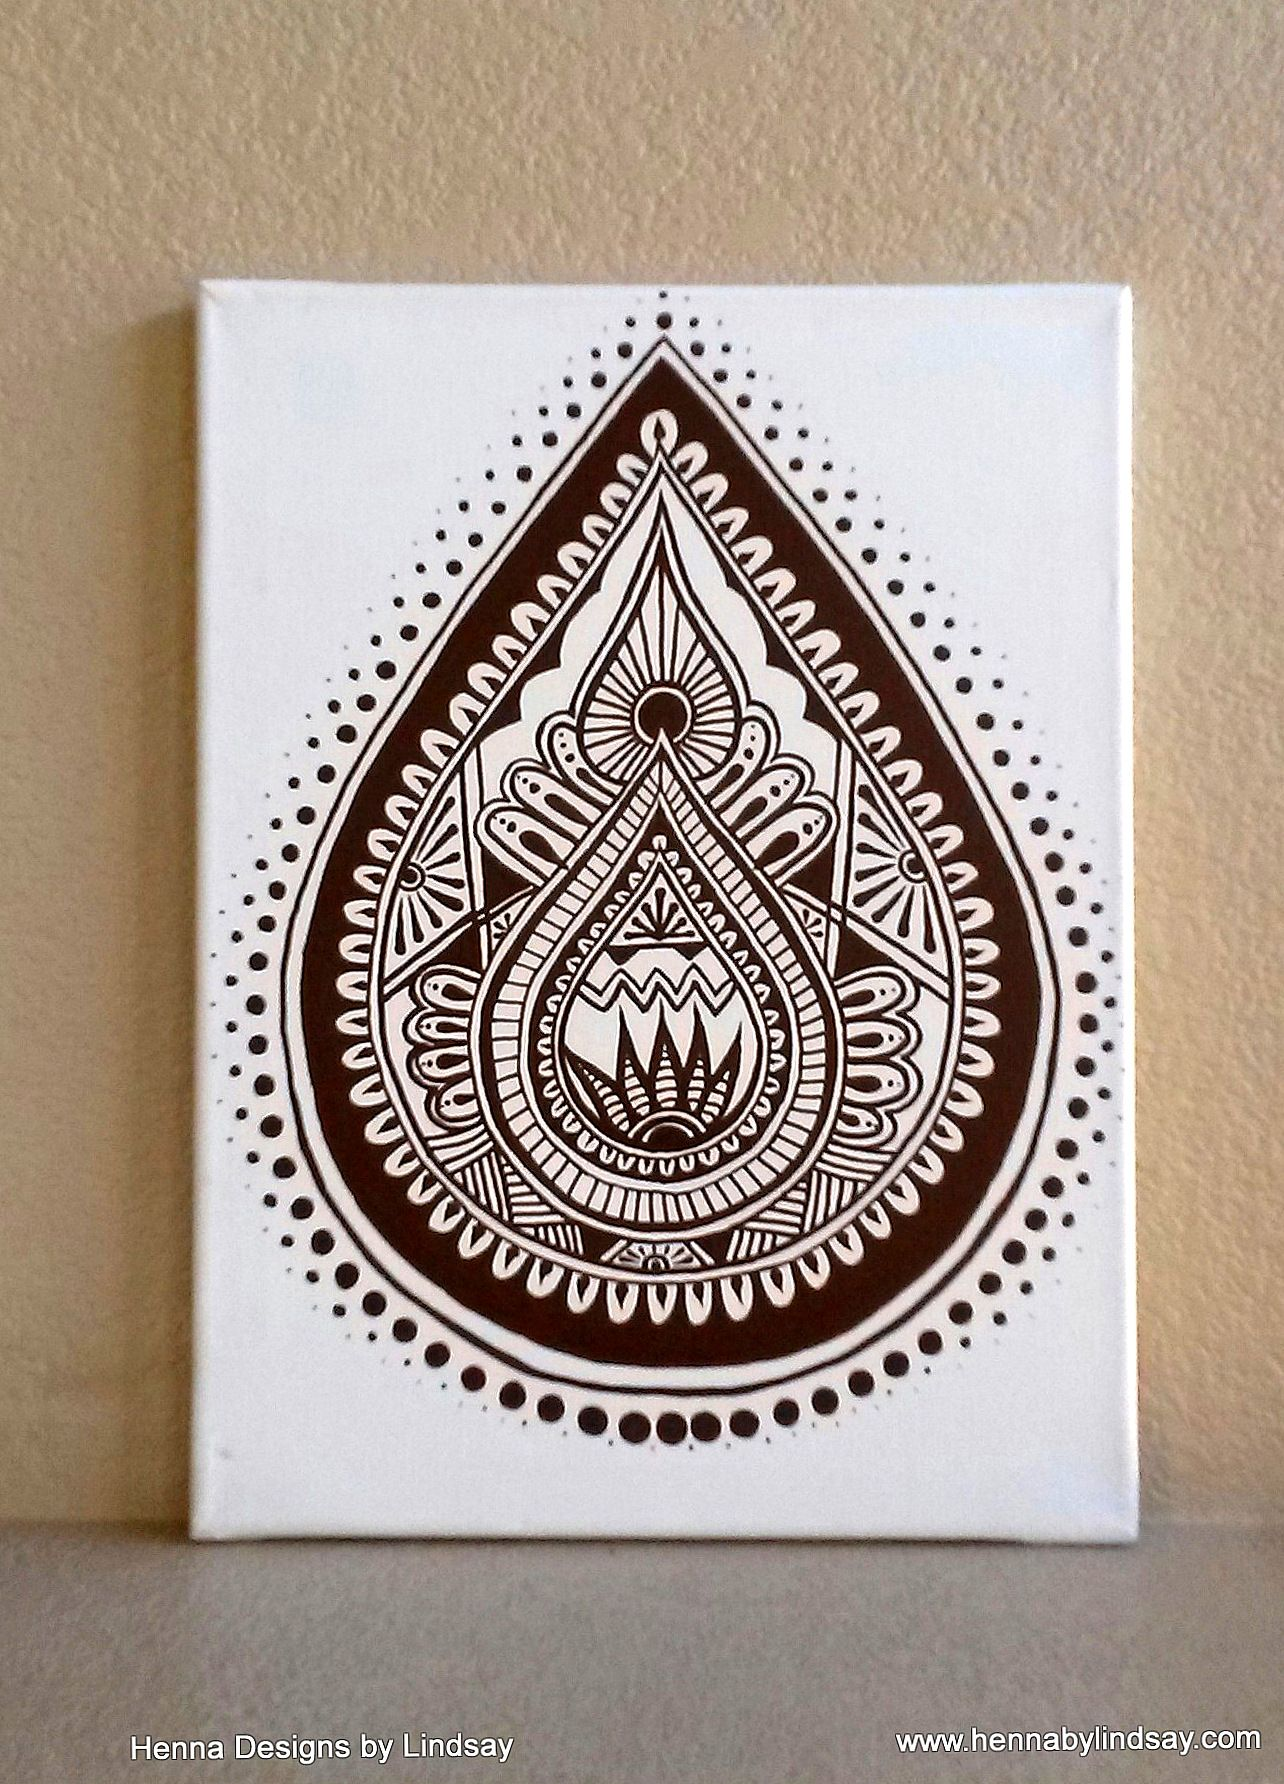 Henna Art Today I Painted One Of My Henna Designs On Canvas With Acrylic Custom Mural Services Coming Soon Www Hennabylindsay Com Henna Art Art Book Art